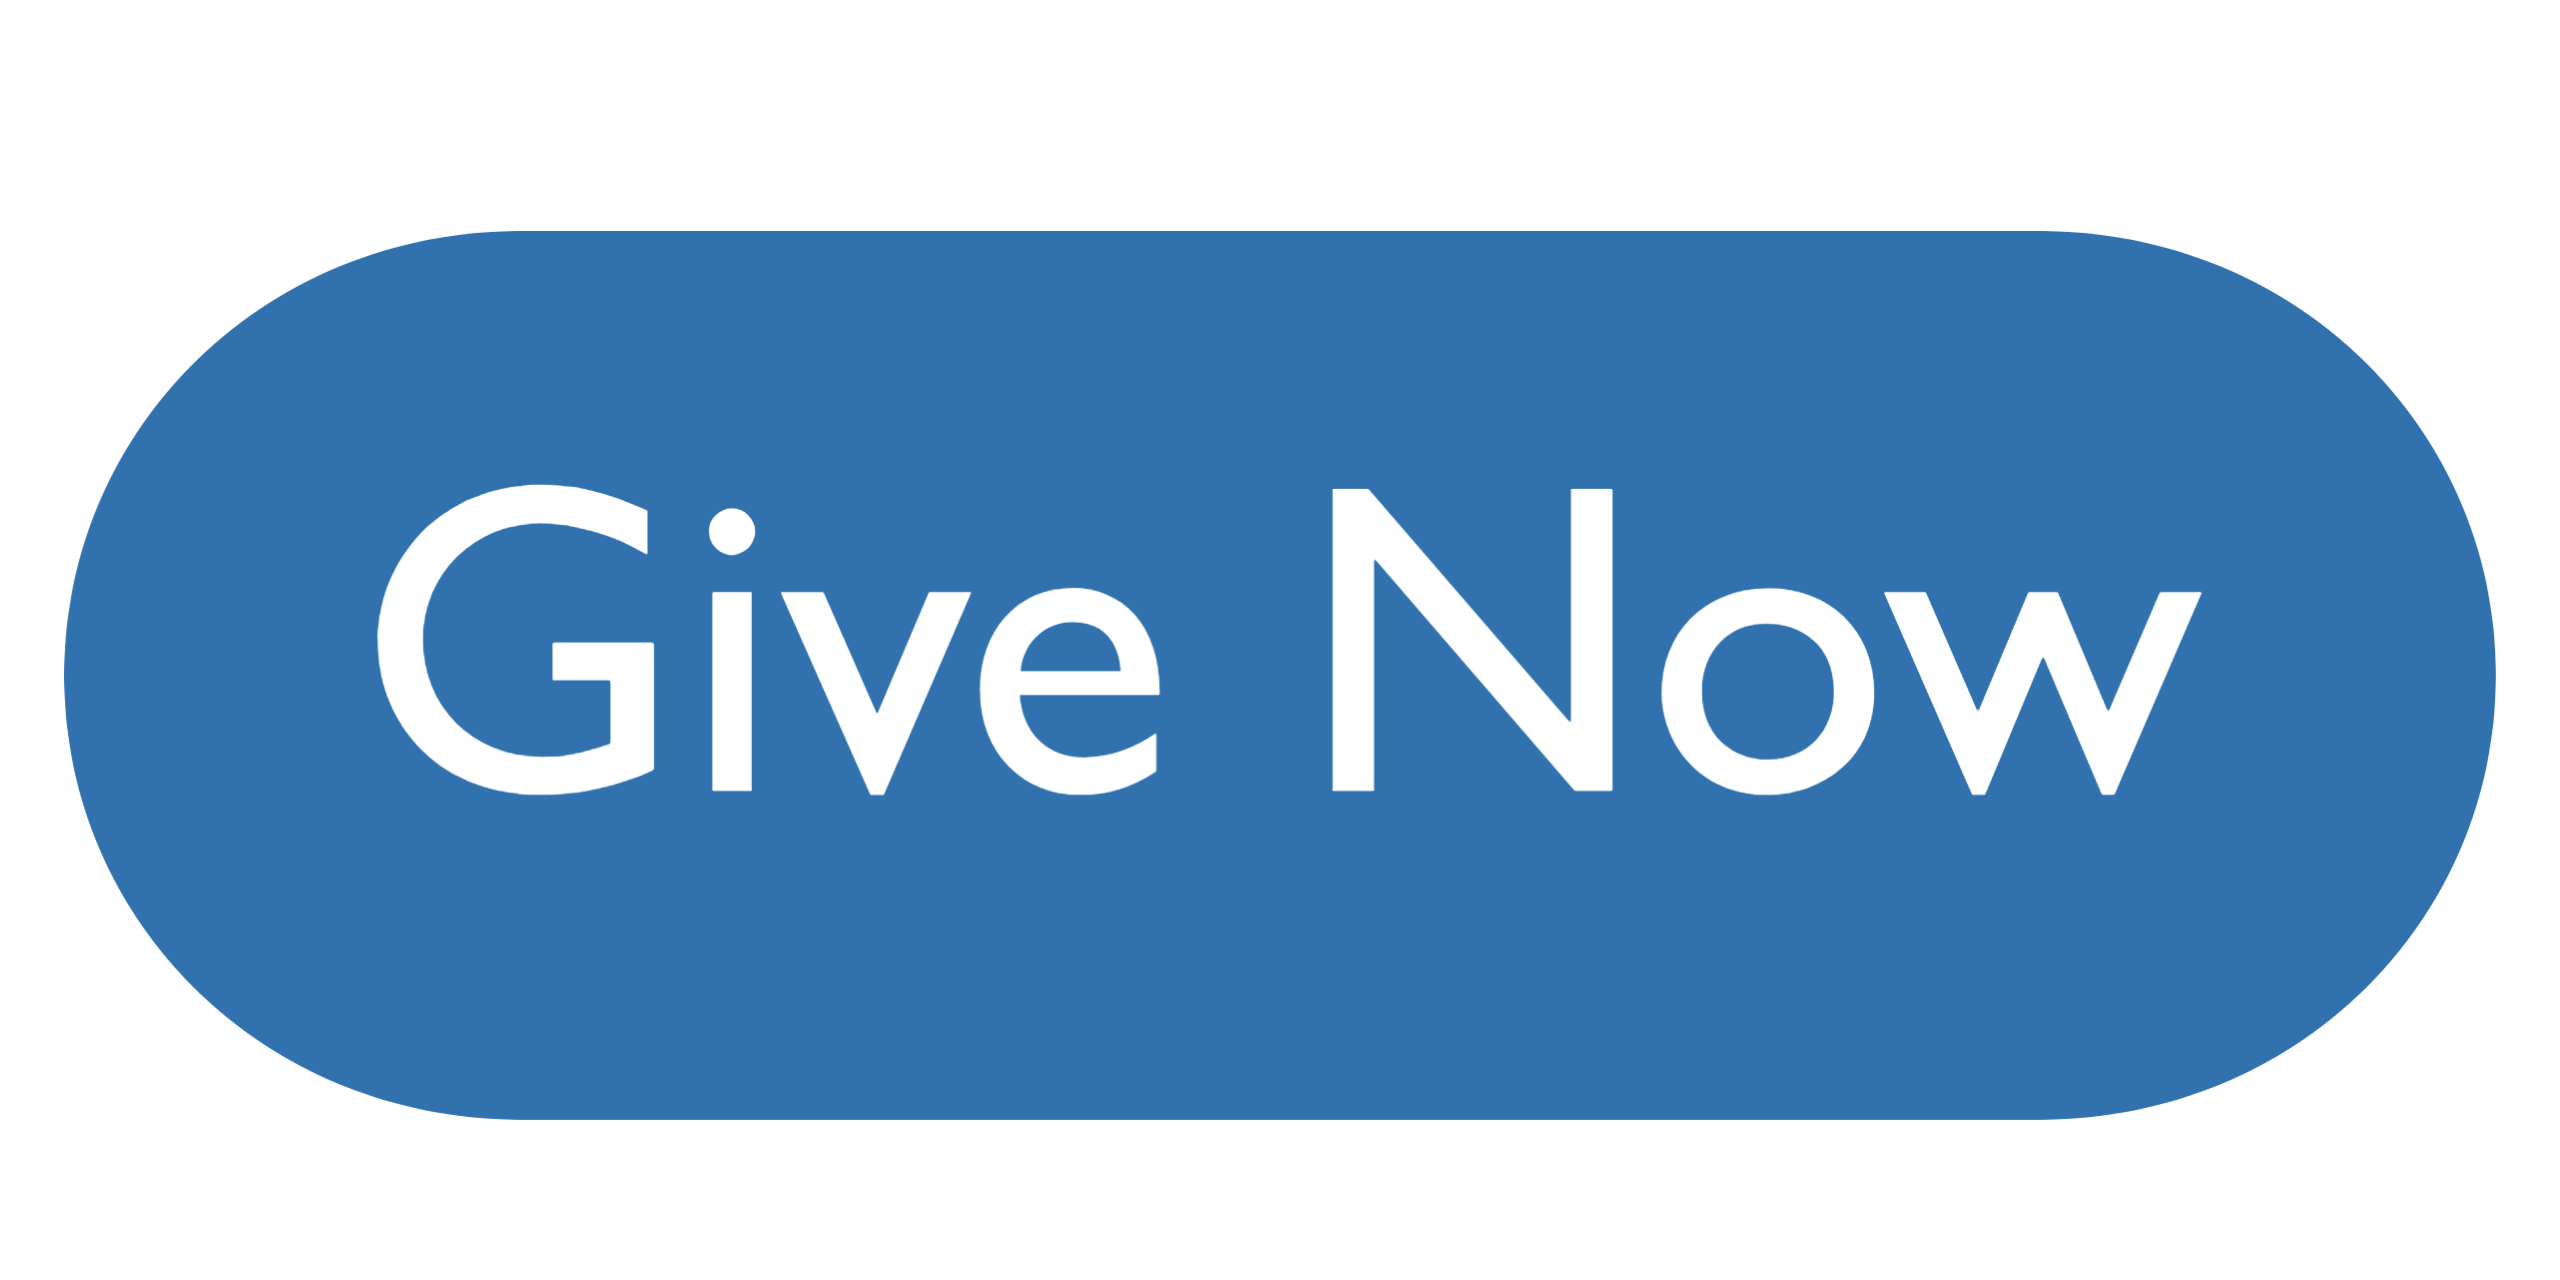 Give Now (active link)